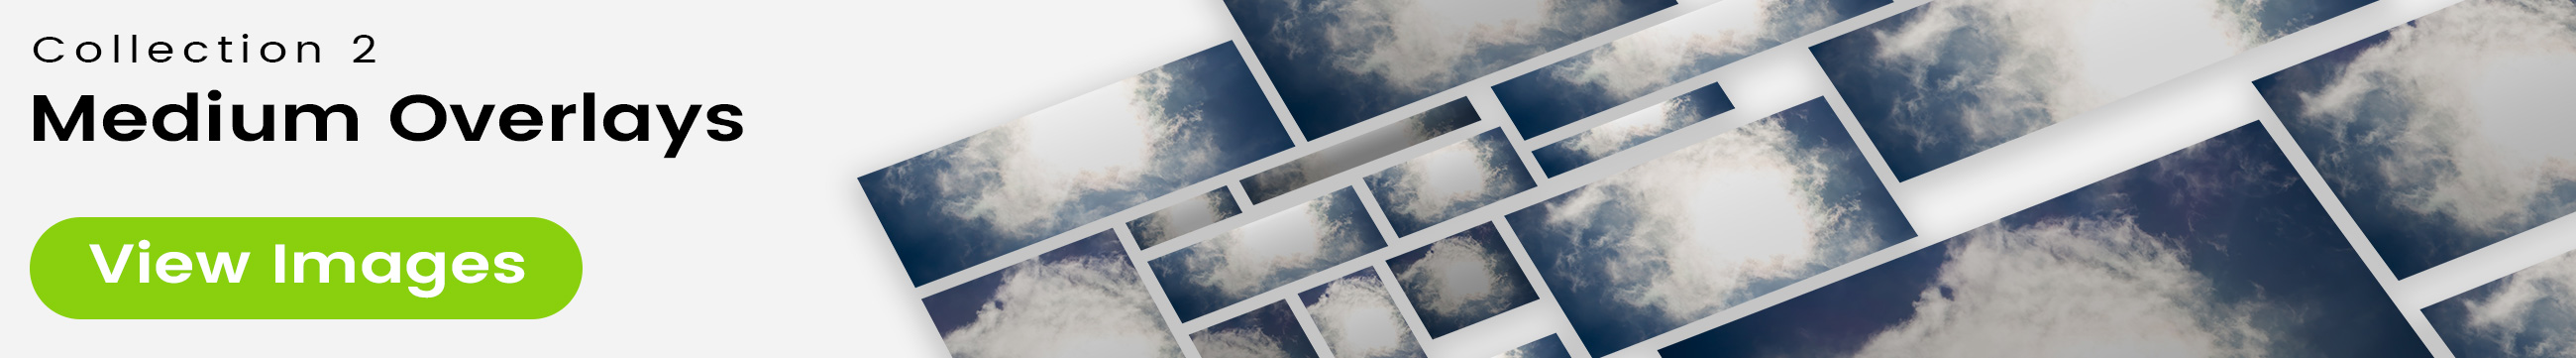 See 25 bonus images included with clouds stock image 9477. Collection 2 of 4 features a medium-dark overlay design.